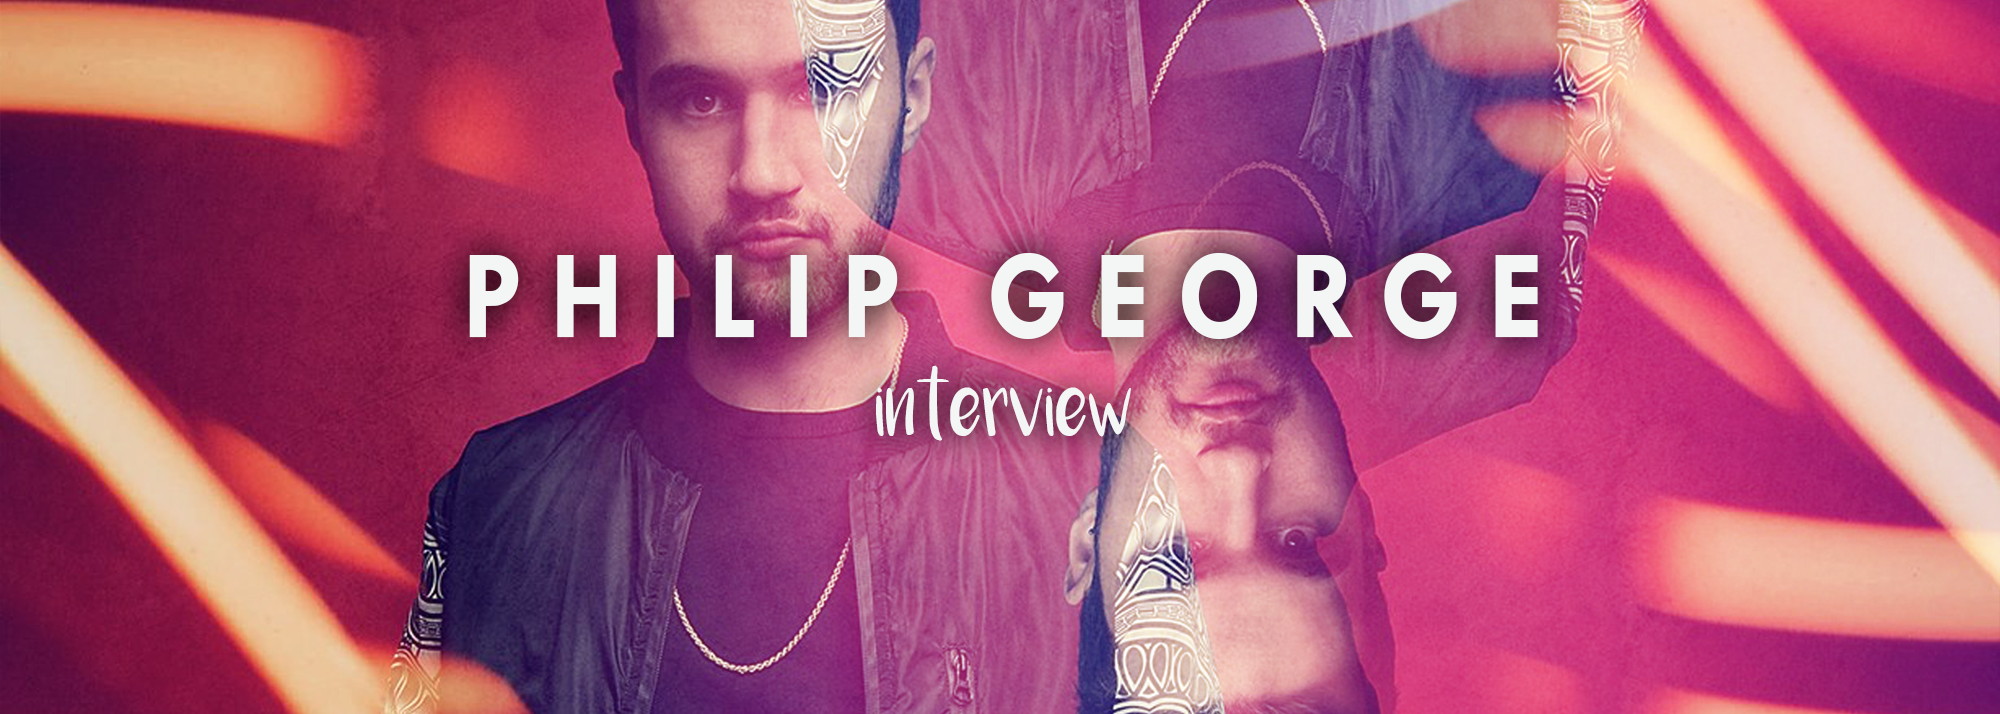 Ocean Beach Ibiza Exclusive Philip George Interview